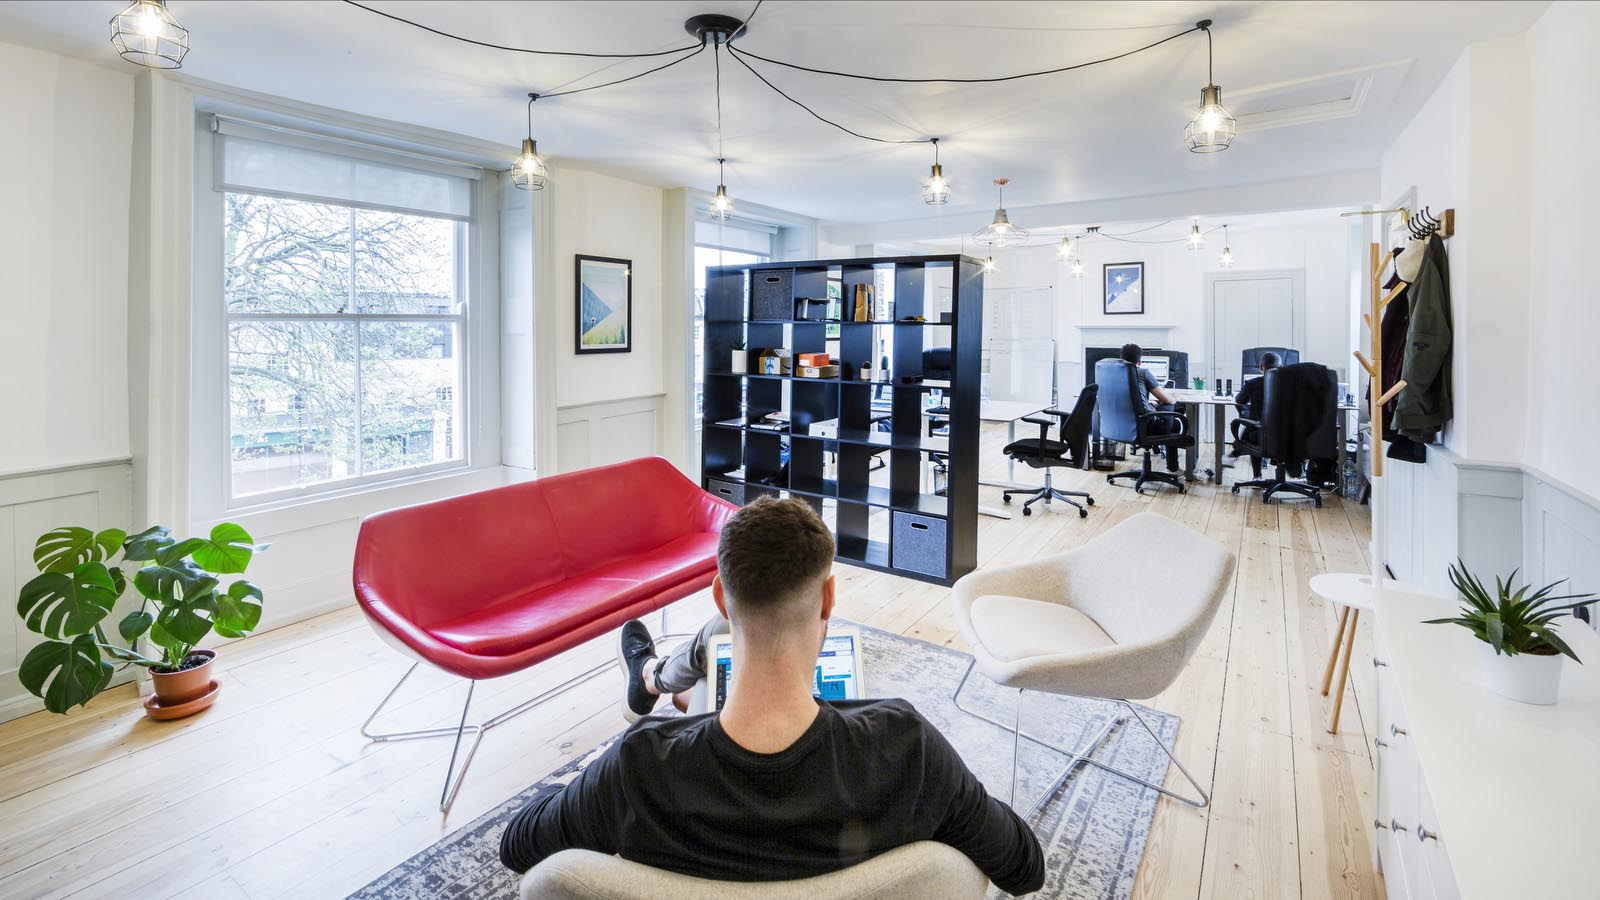 Finding creative office space in London